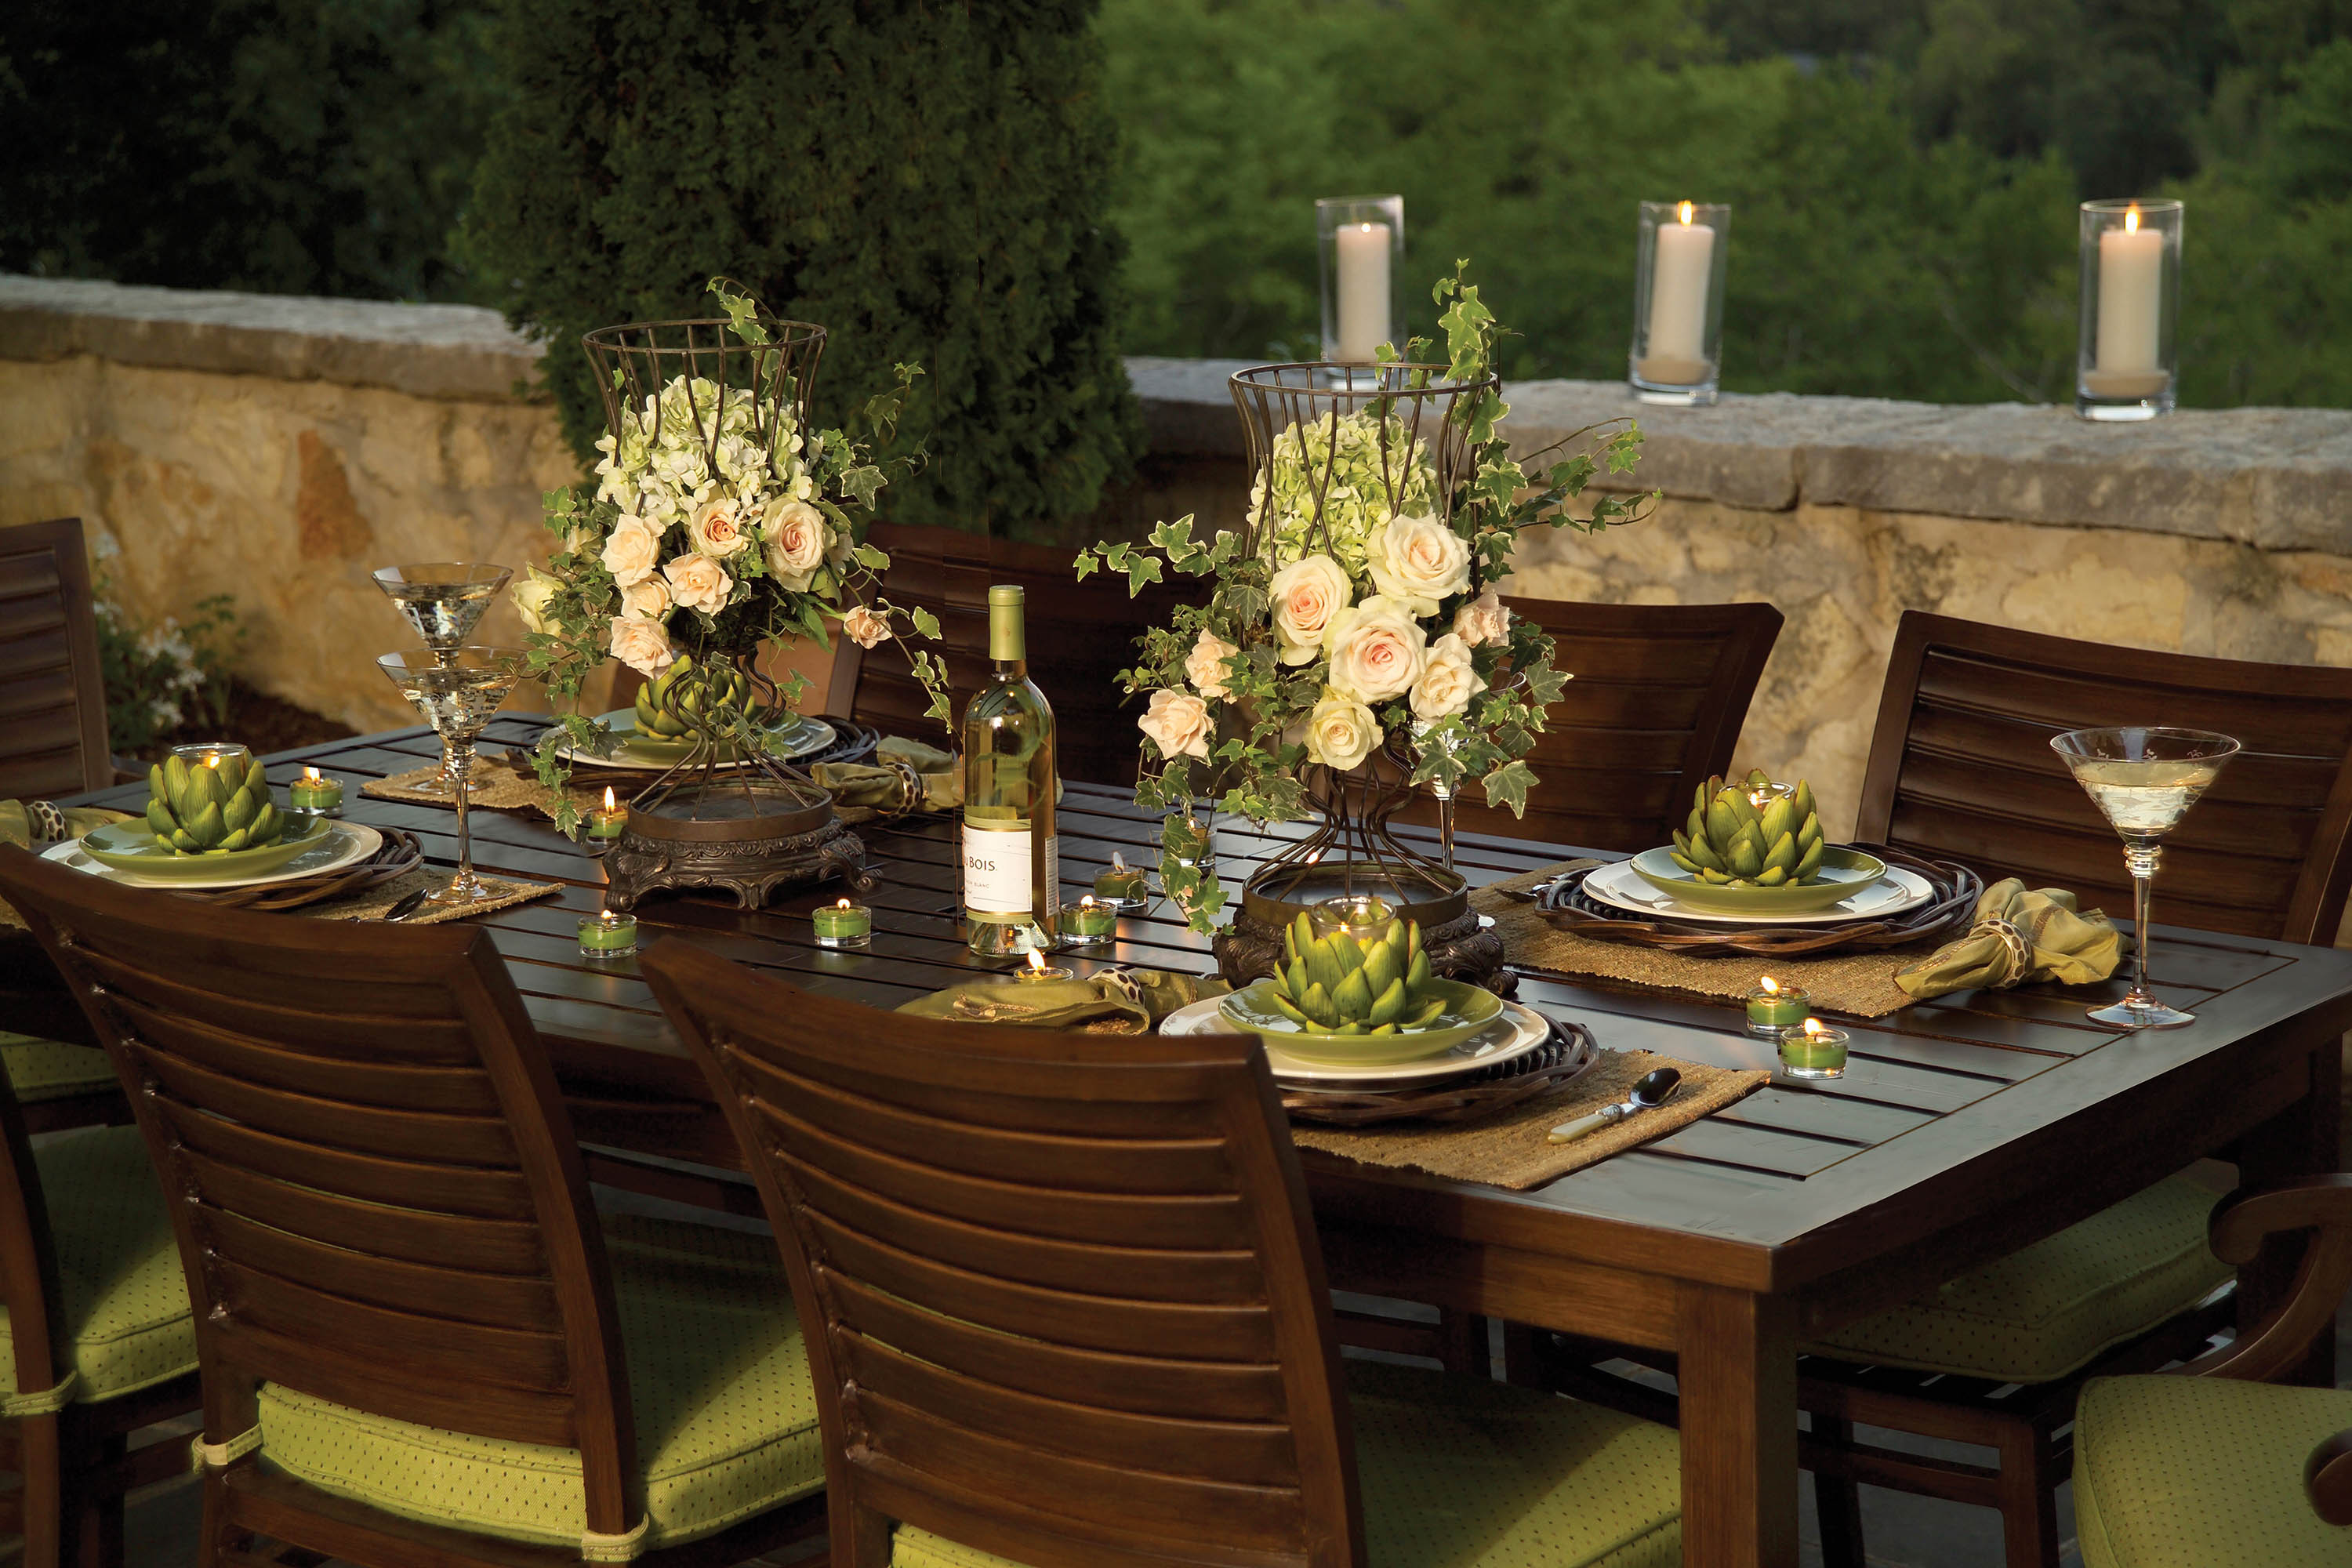 Fall centerpieces for outdoor entertaining summer classics